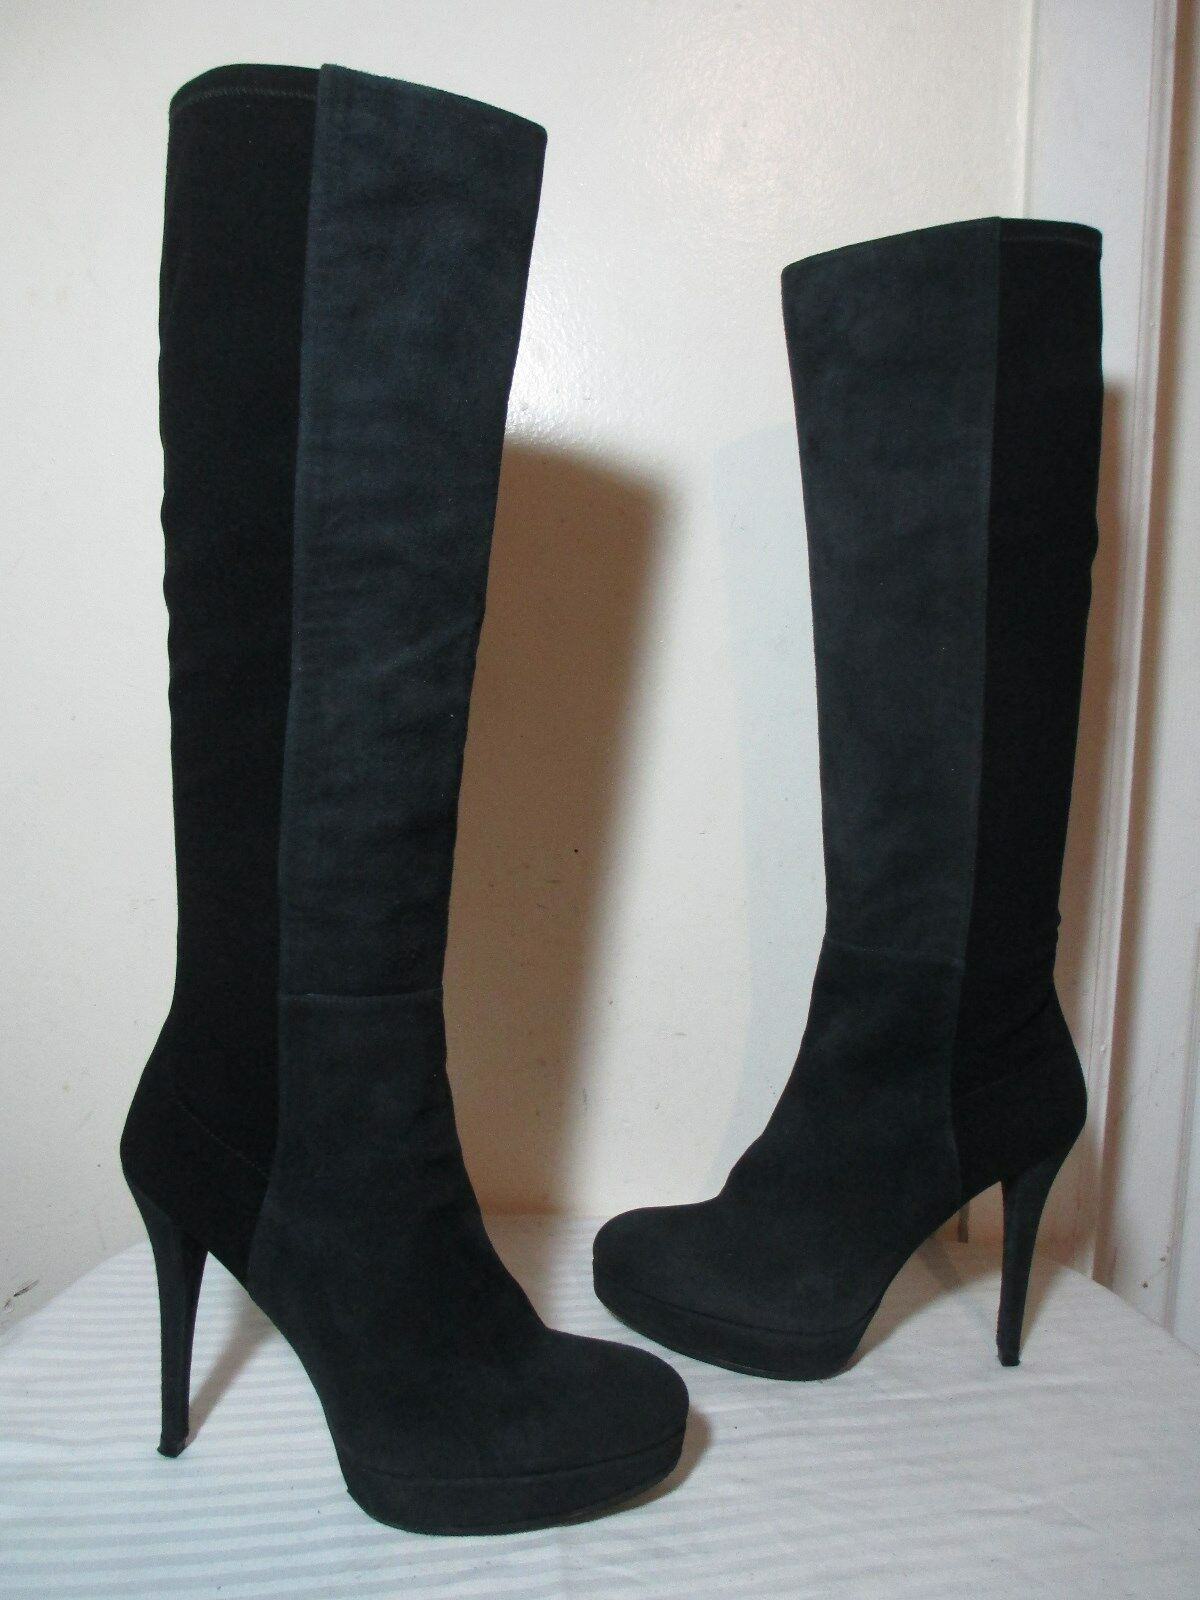 $695 STUART WEITZMAN 50/50 BLACK SUEDE PULL ON HIGH HEEL TALL BOOTS SZ 9½ M